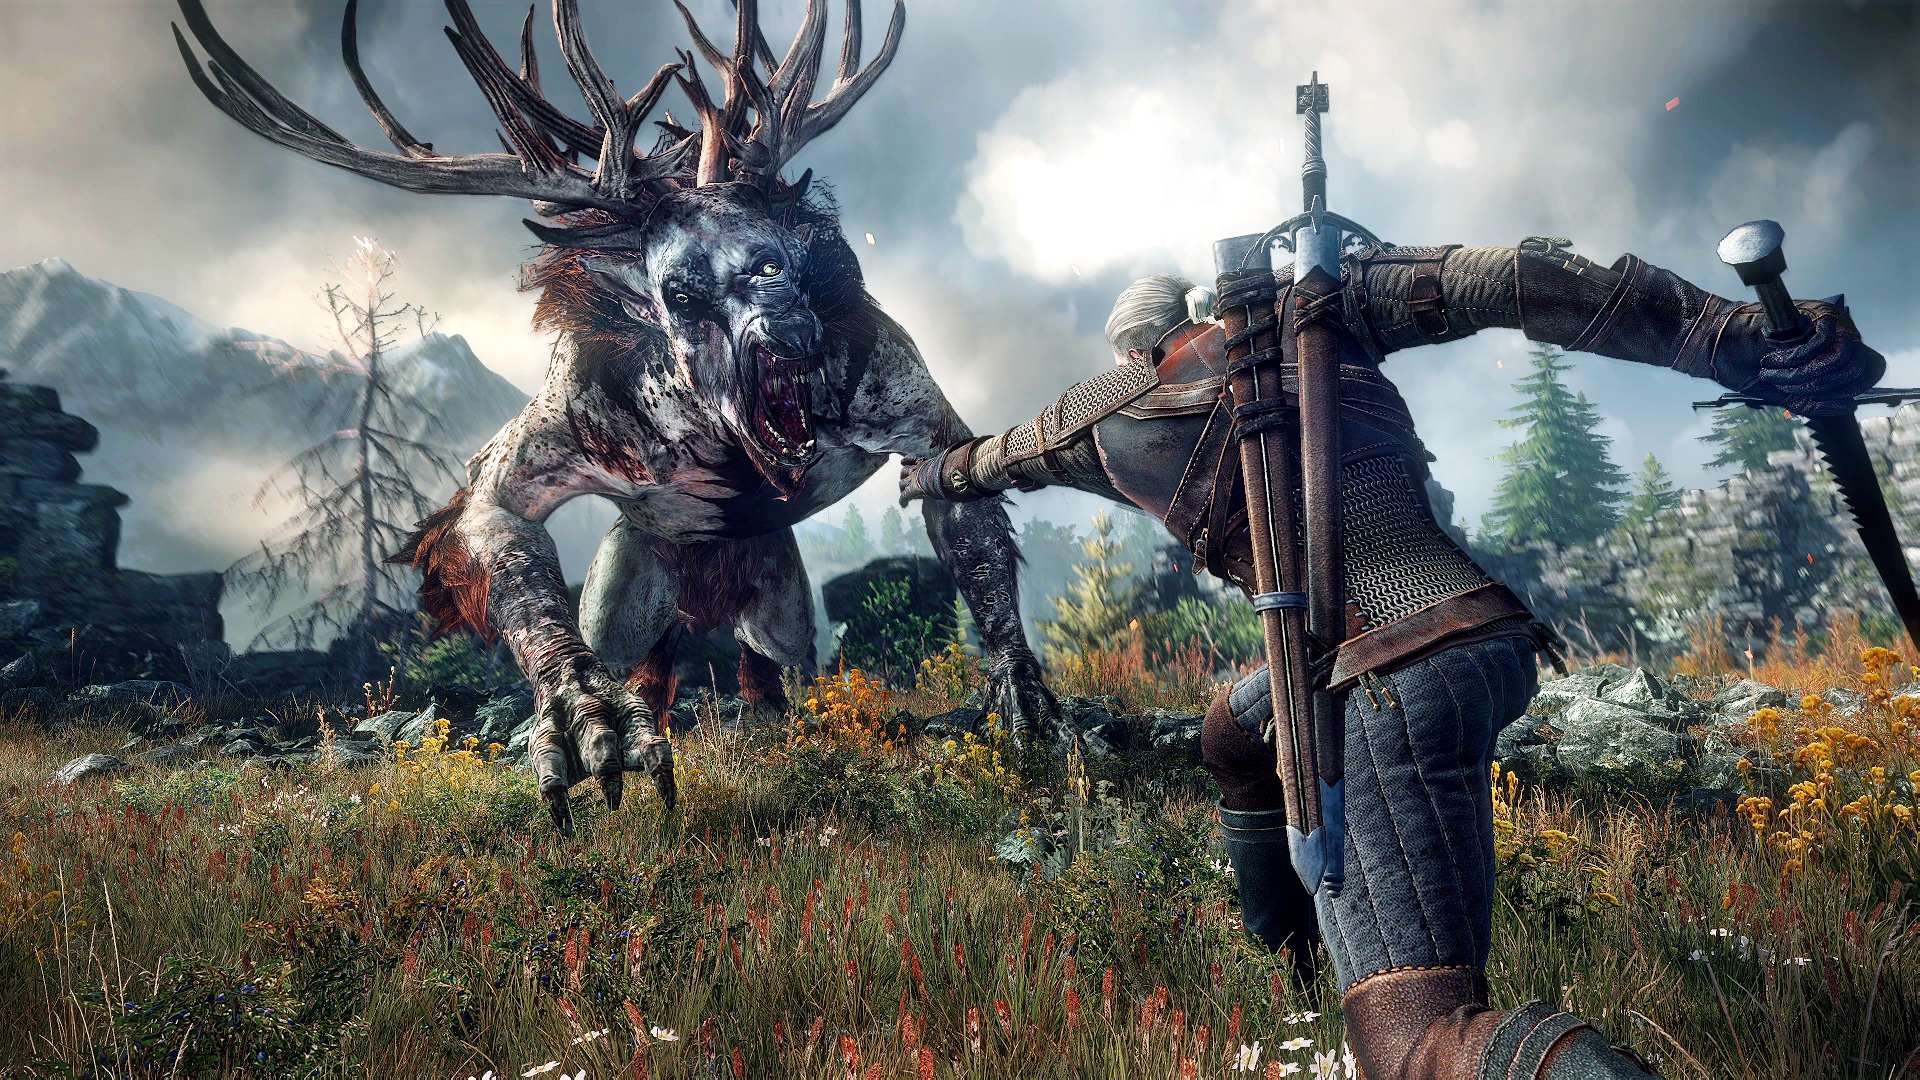 311 2 1439551173 Witcher 3 Game Of The Year Edition Gets Incredible First Trailer